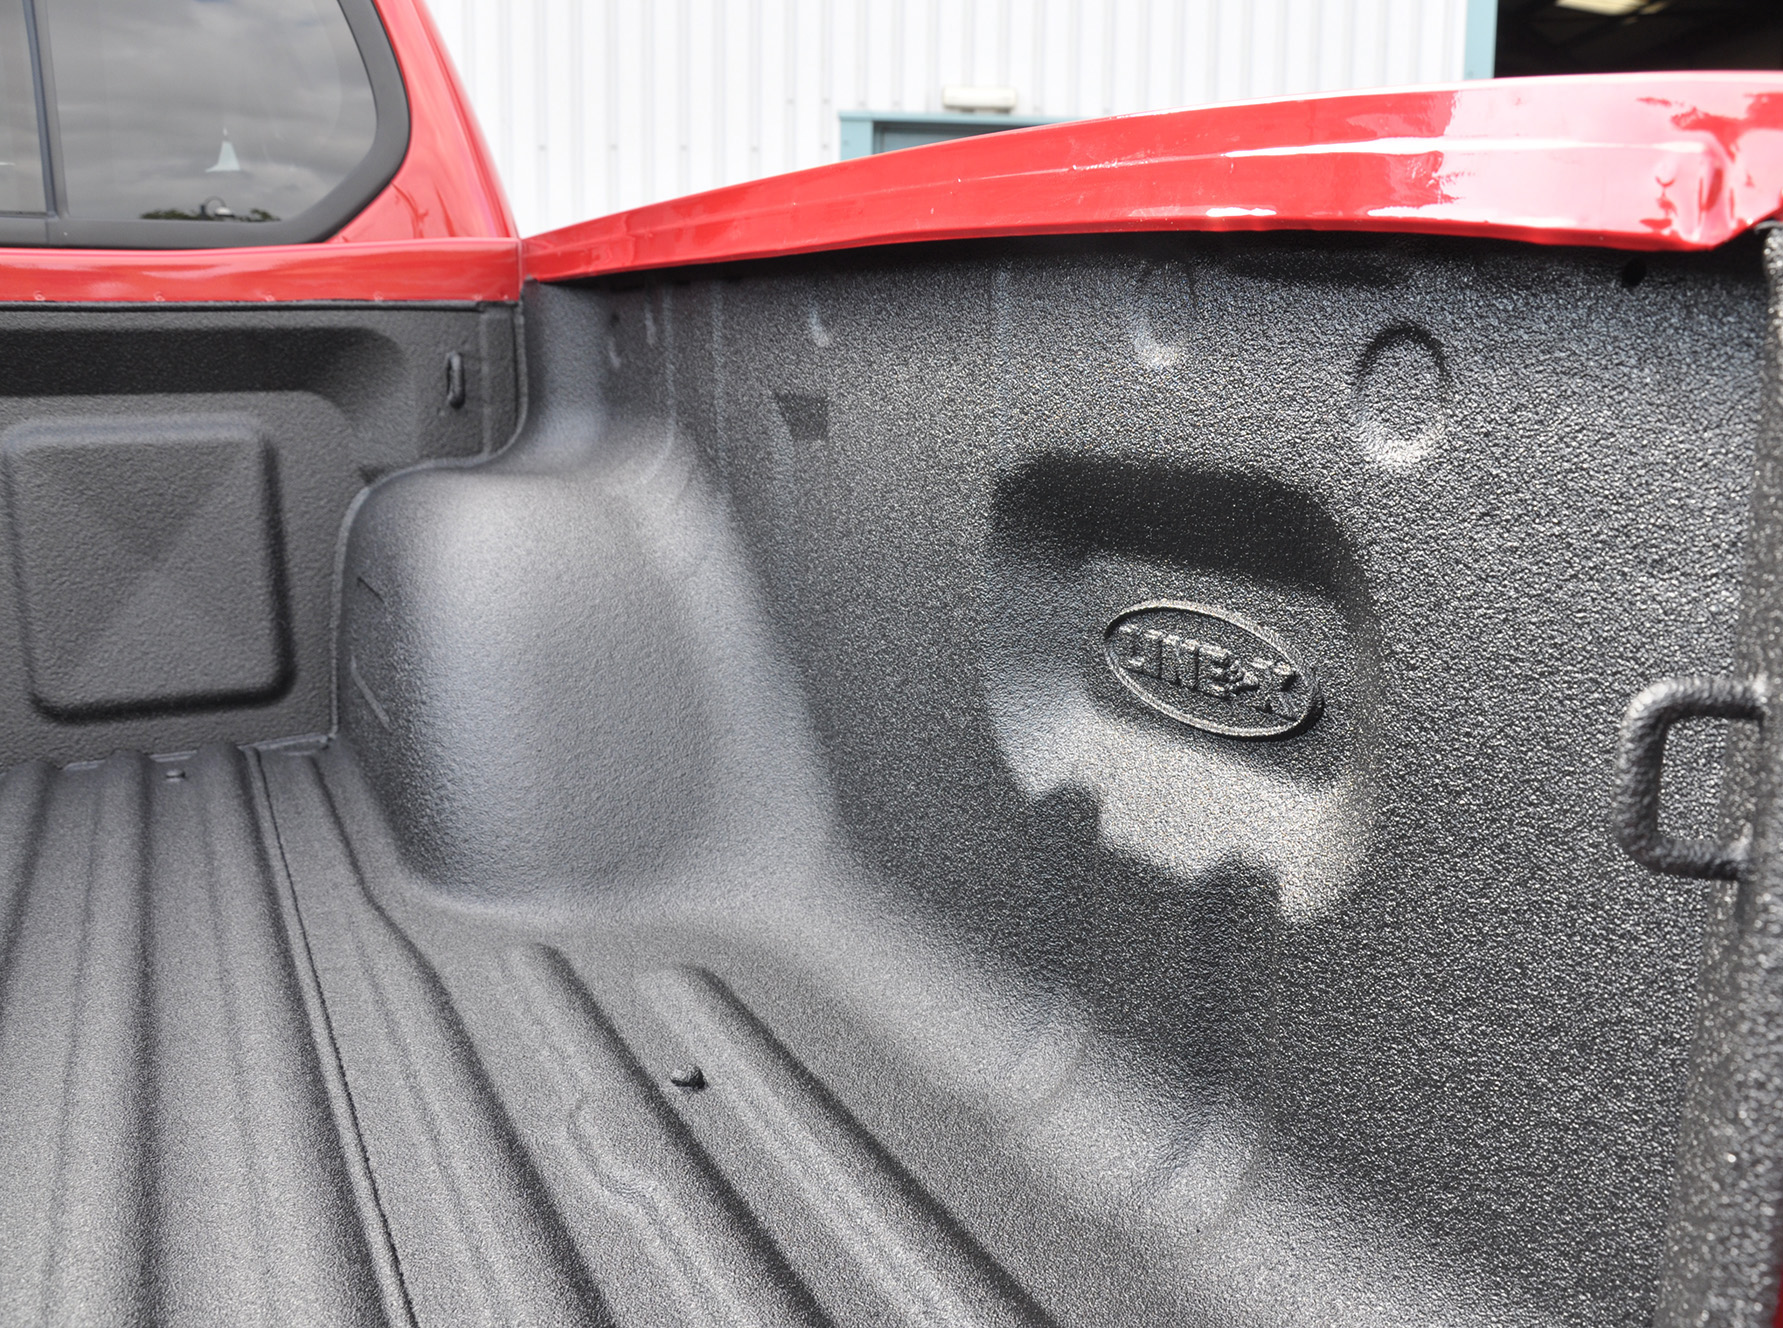 Spray On Pick Up Truck Bedliners From Line X